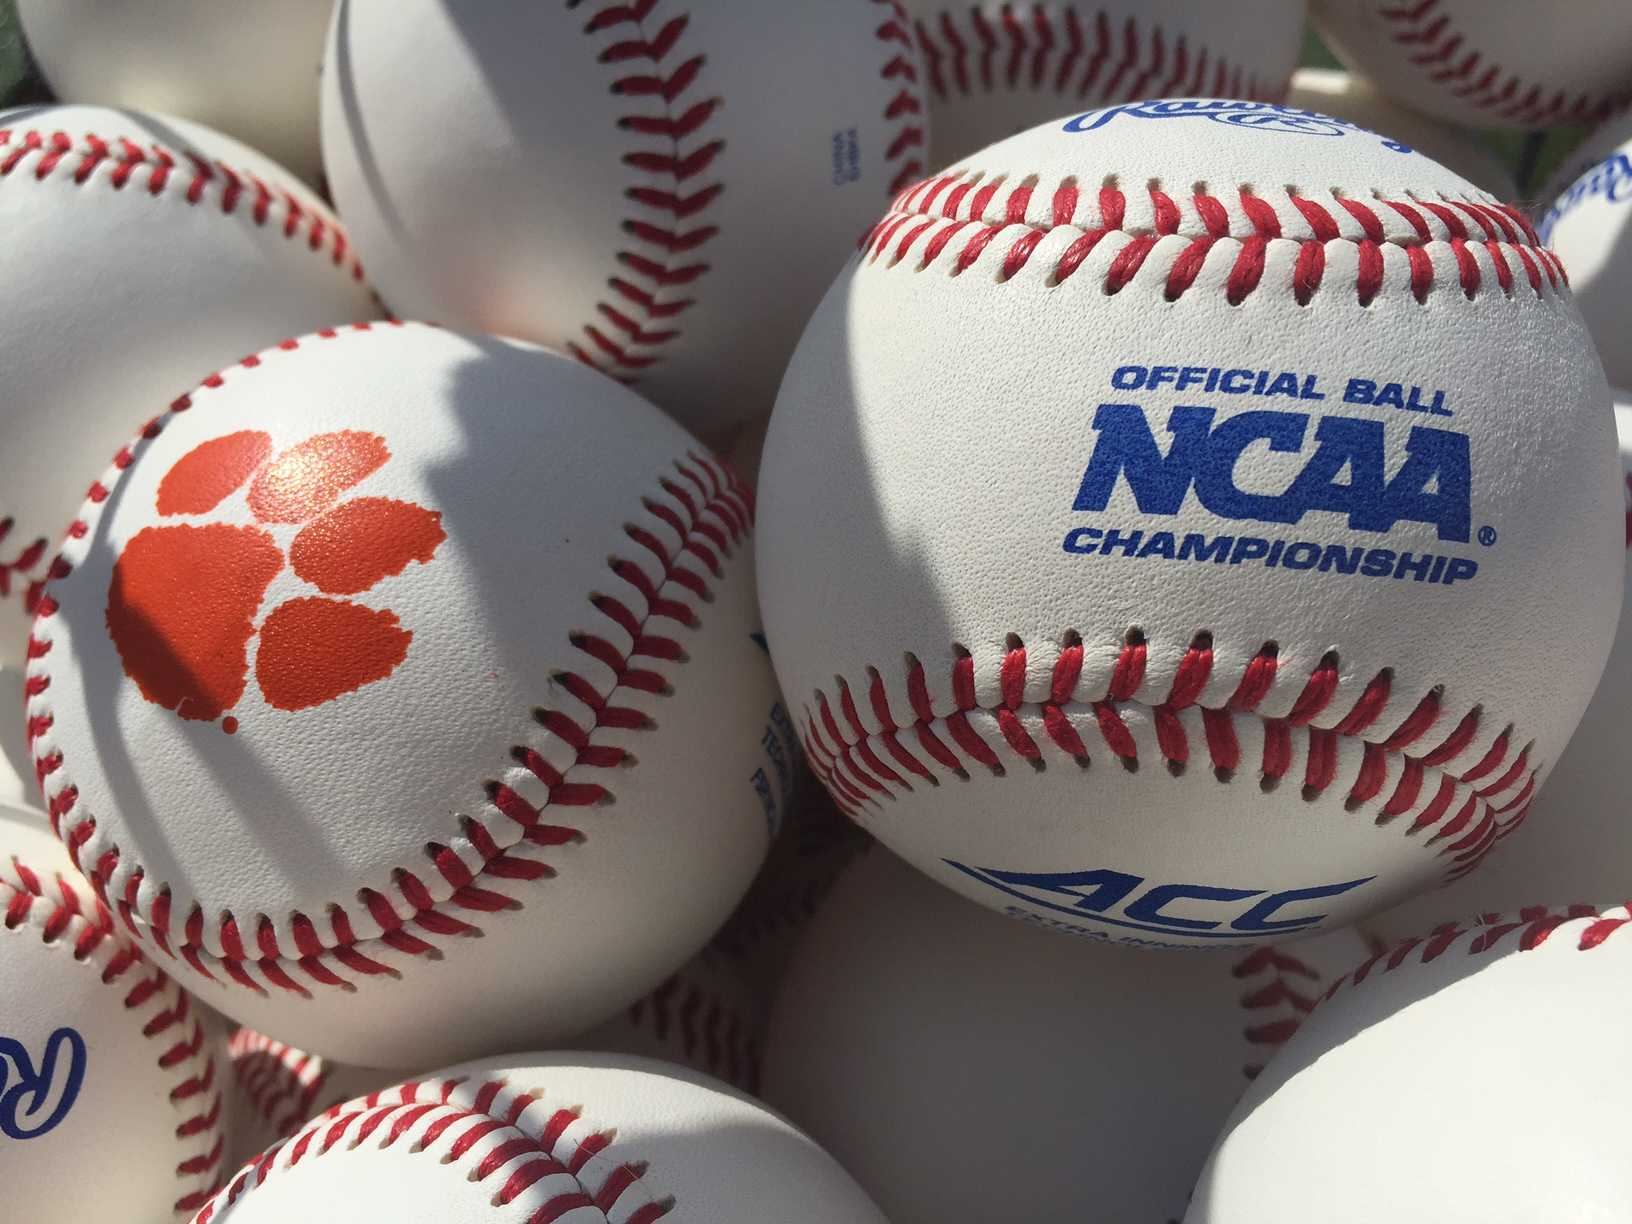 Eubanks' strong showing leads Clemson to 5-4 win over UNCG